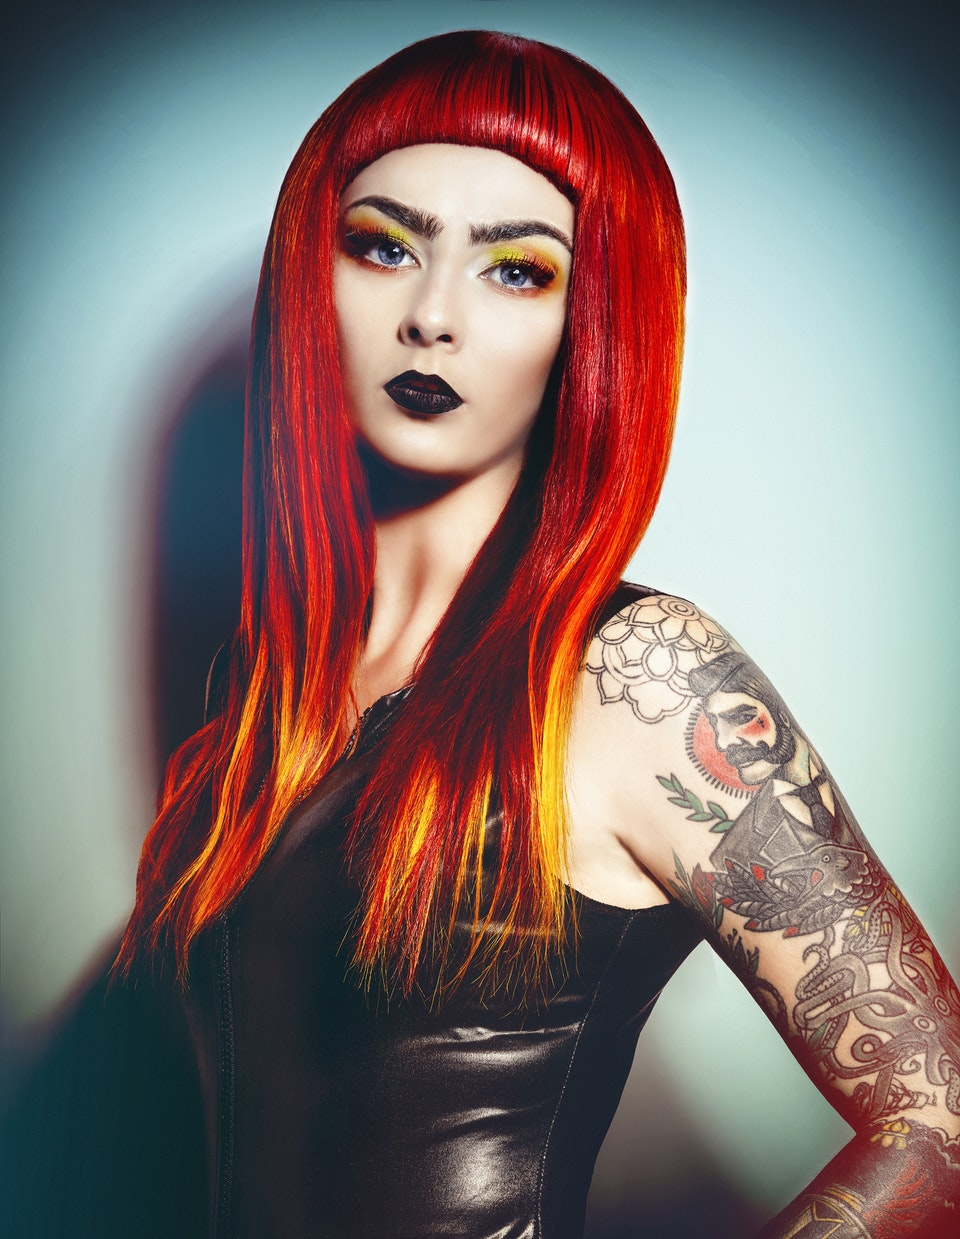 JARRED Photography - FLAMING JUNE - URBAN HAIR